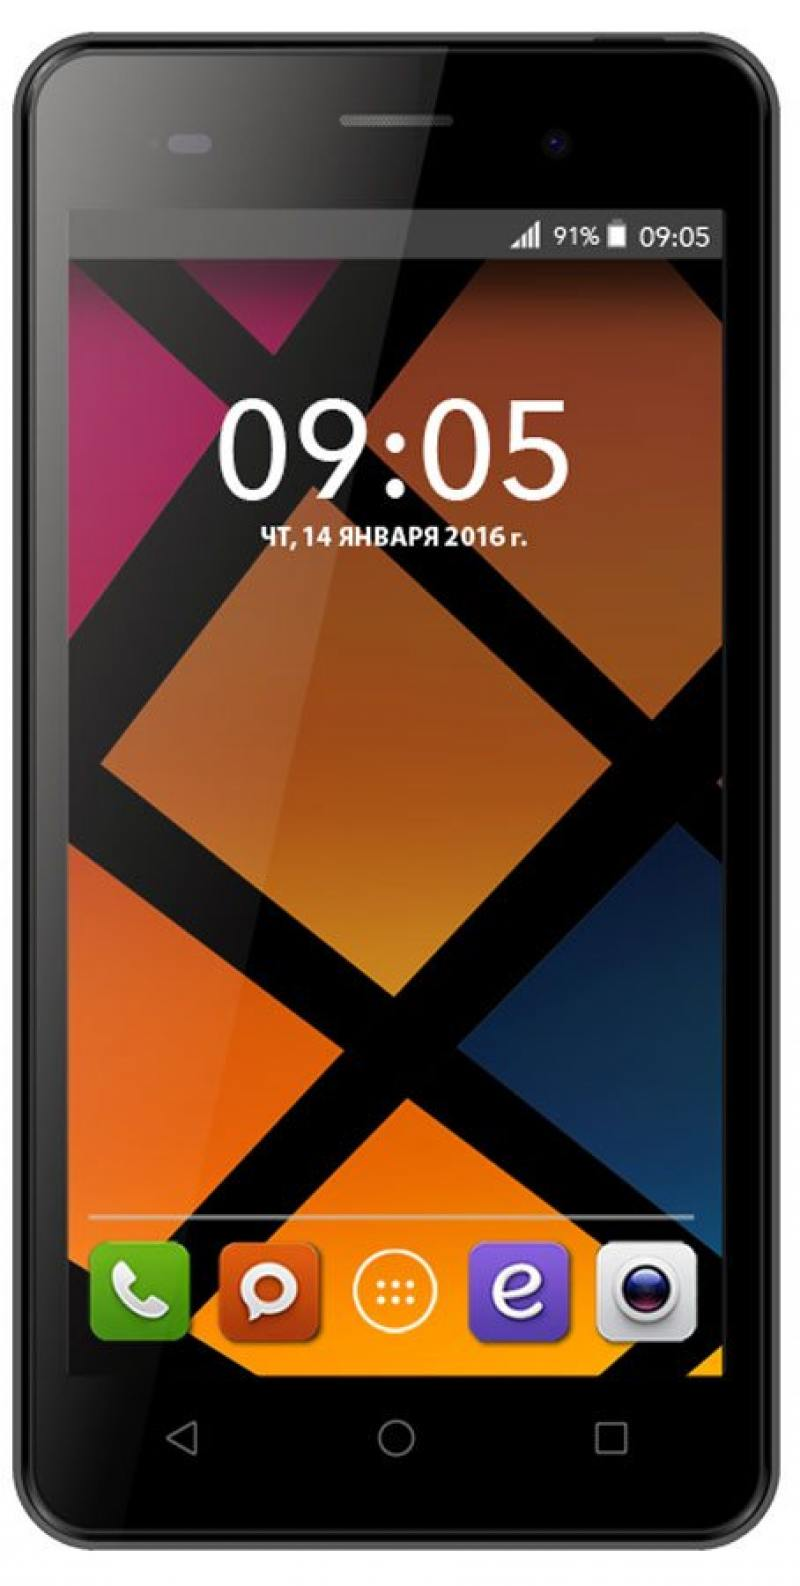 Смартфон BQS-5020 Strike (Black) MediaTek MT6580 (1.3)/1GB/8GB/5.0 1280х720 IPS/2Sim/13Mp, 5Mp Cam/Android 6.0 смартфон bq mobile strike black brushed bqs 5020